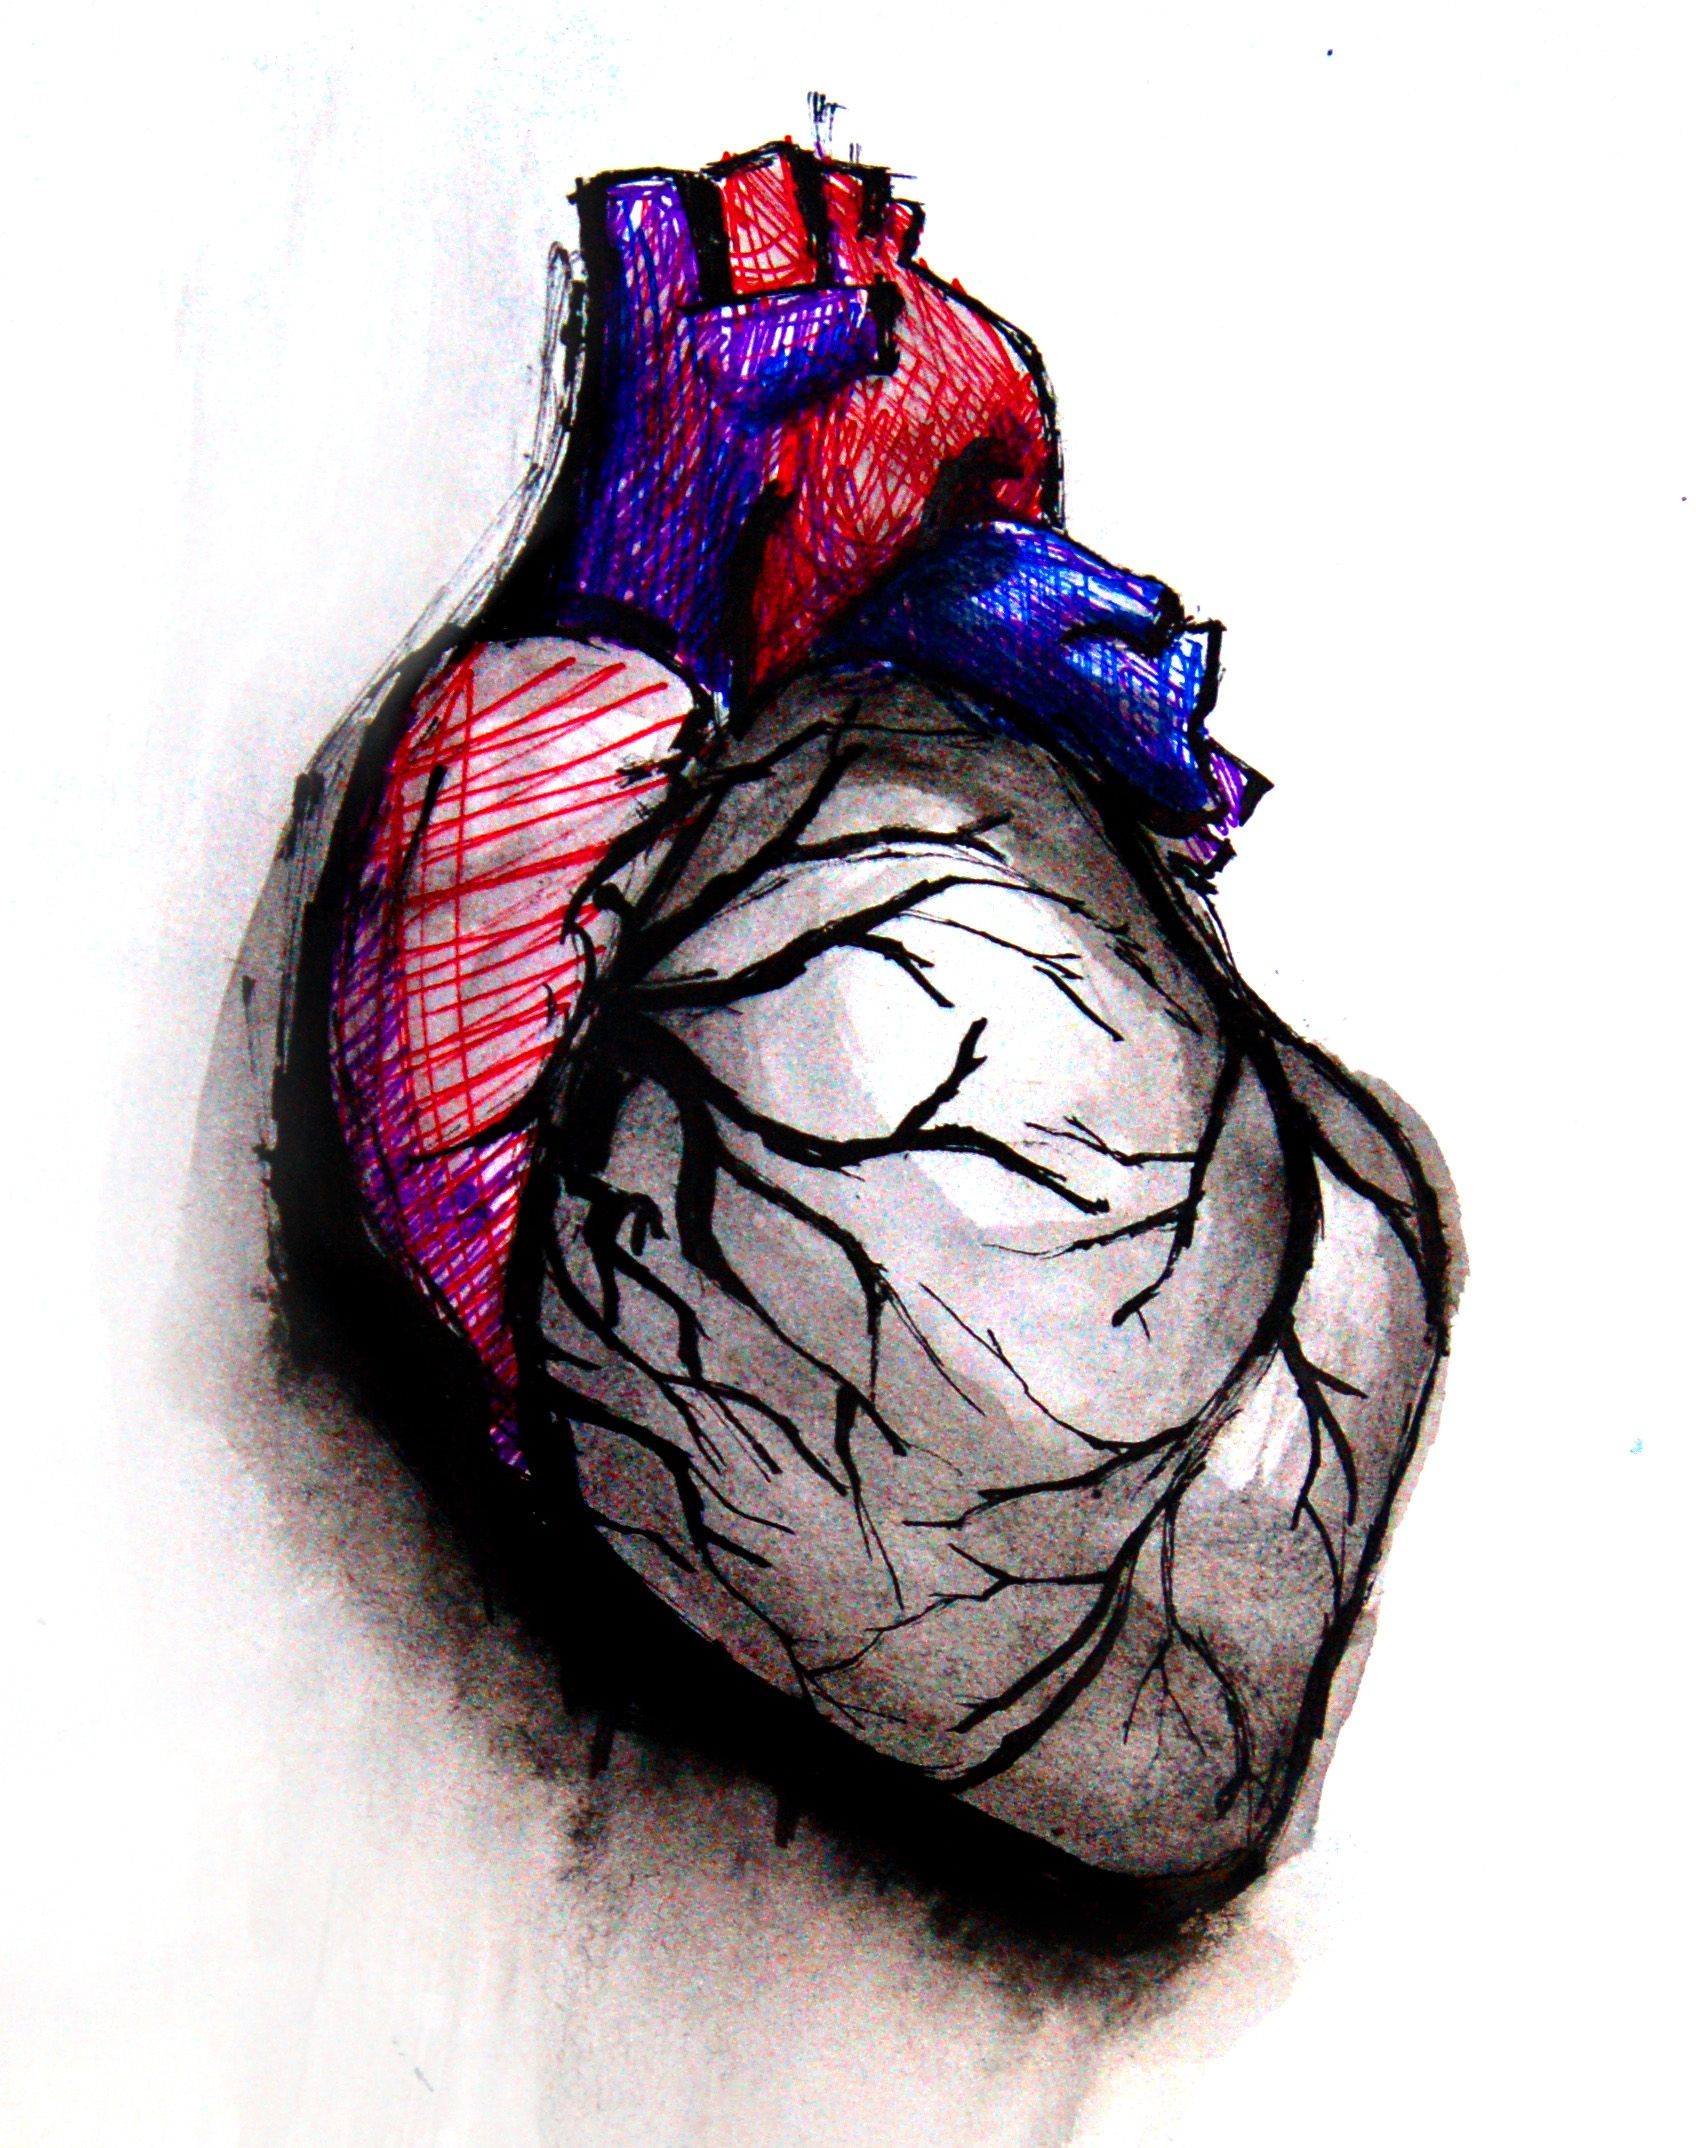 Heart Art | Page 4 | ECG Guru - Instructor Resources